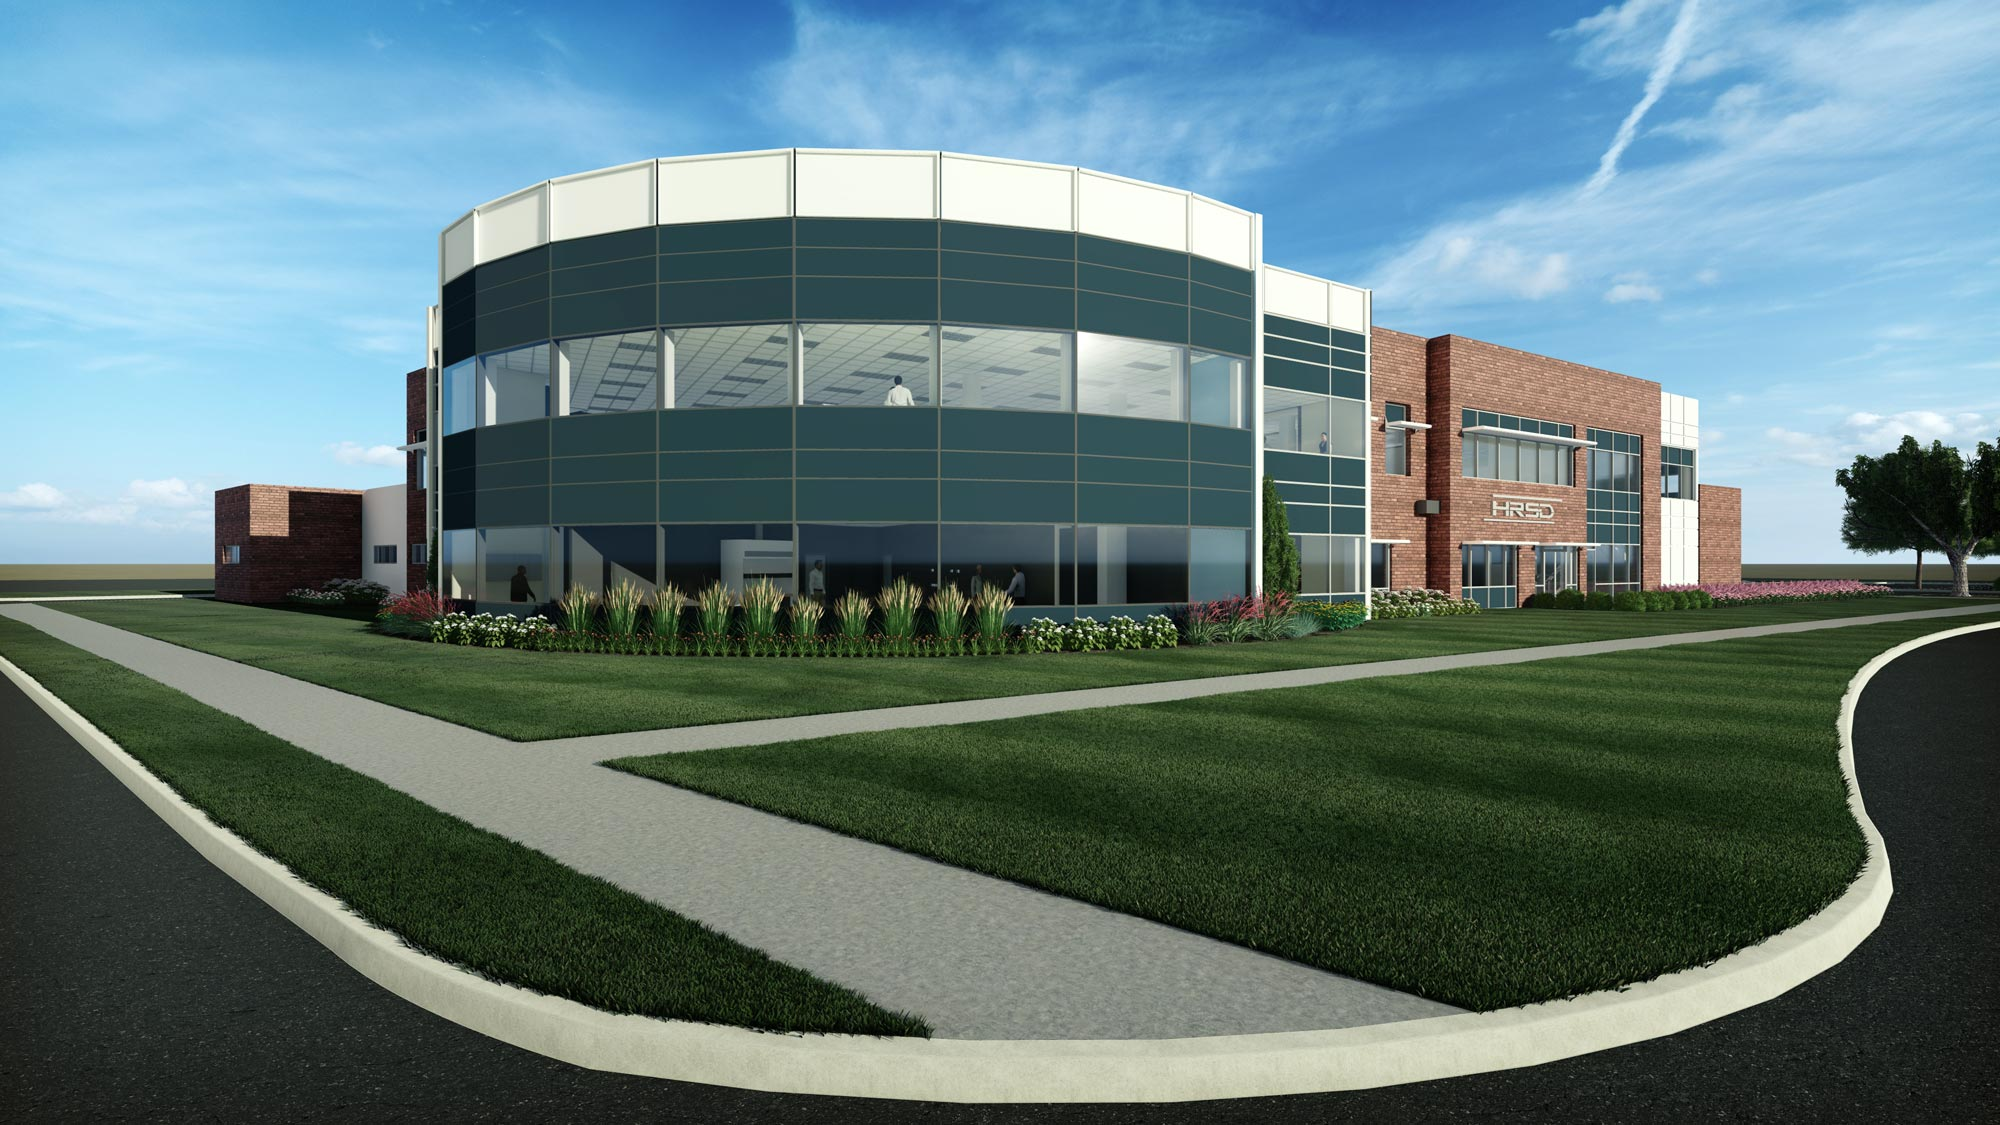 Rendering of HRSD Water Quality Services Building